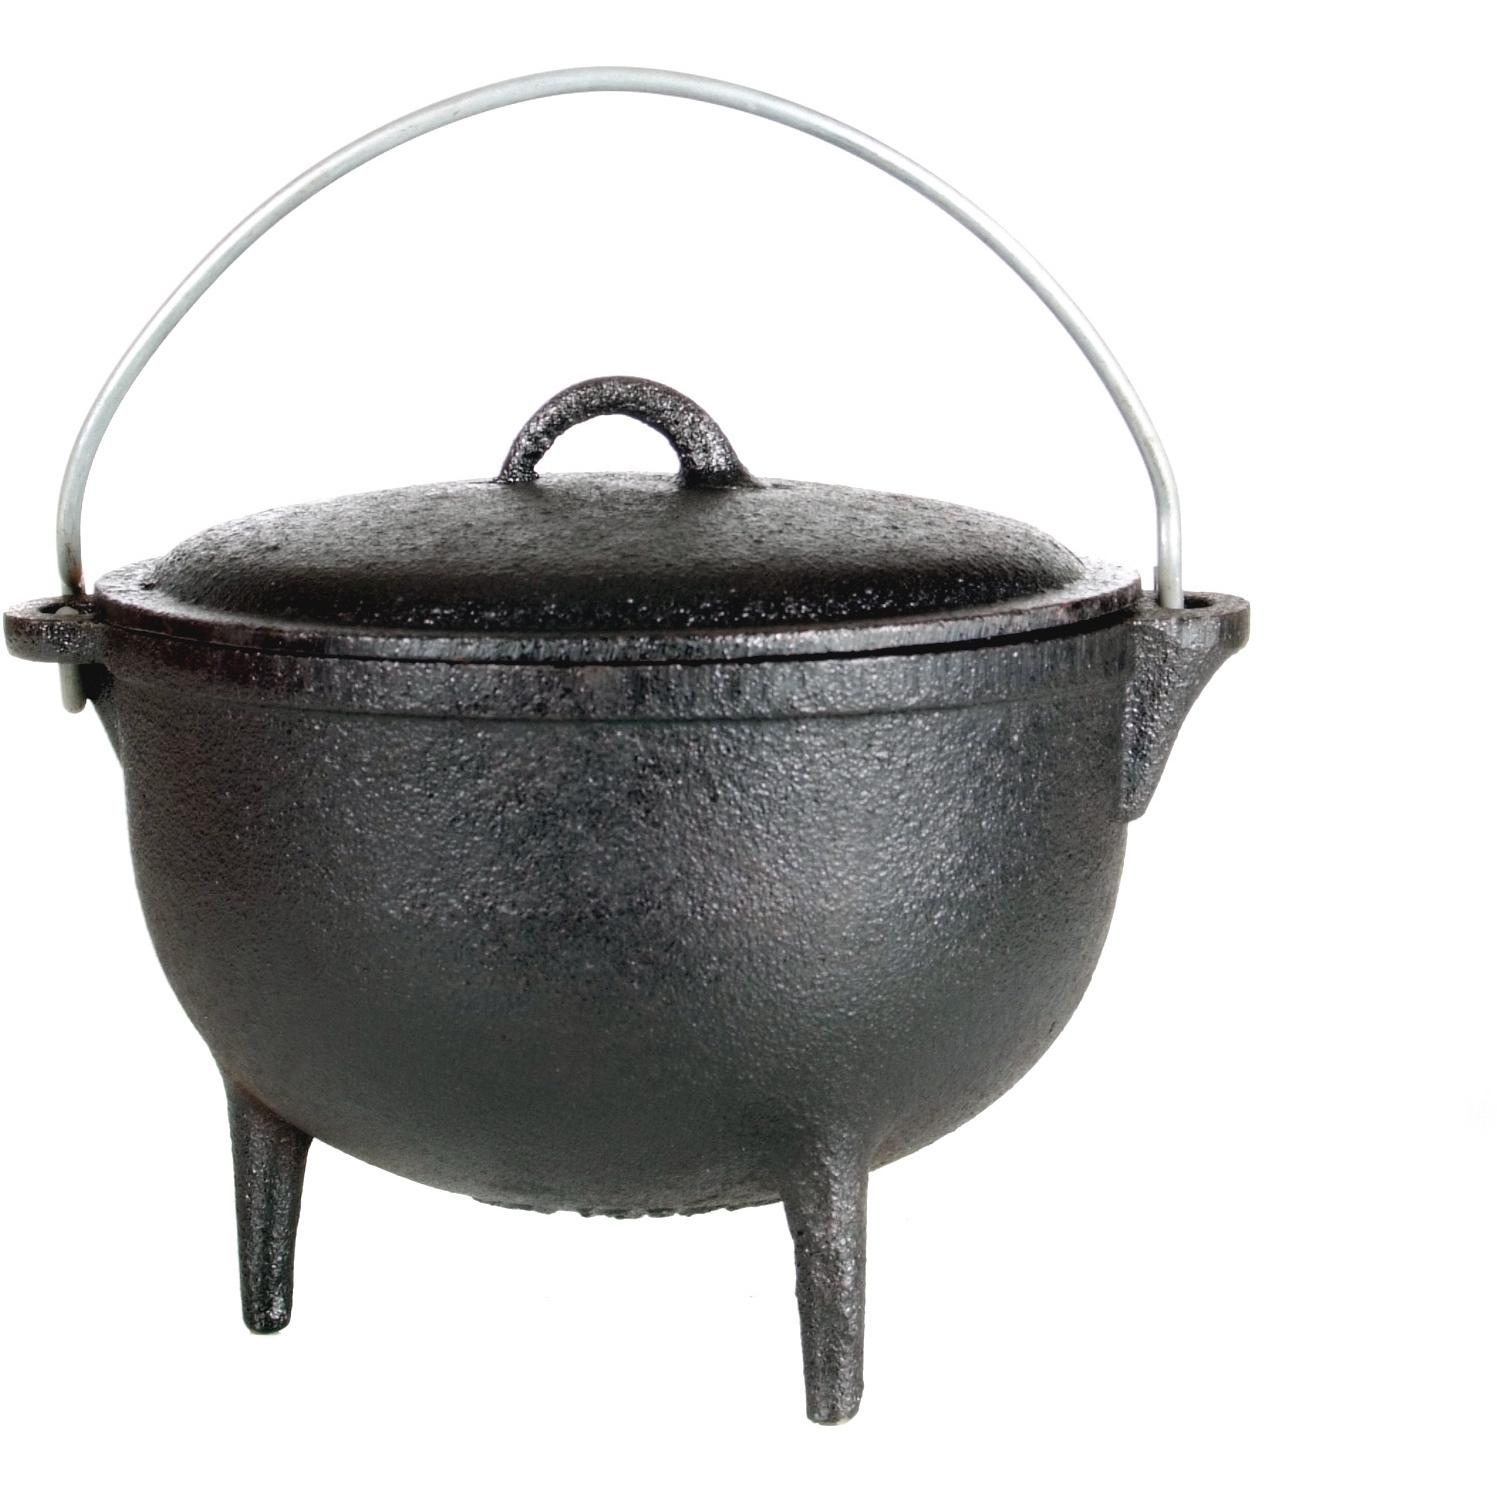 Cast Iron Pot Cajun Cookware 1 Quart Seasoned Cast Iron Camp Pot With